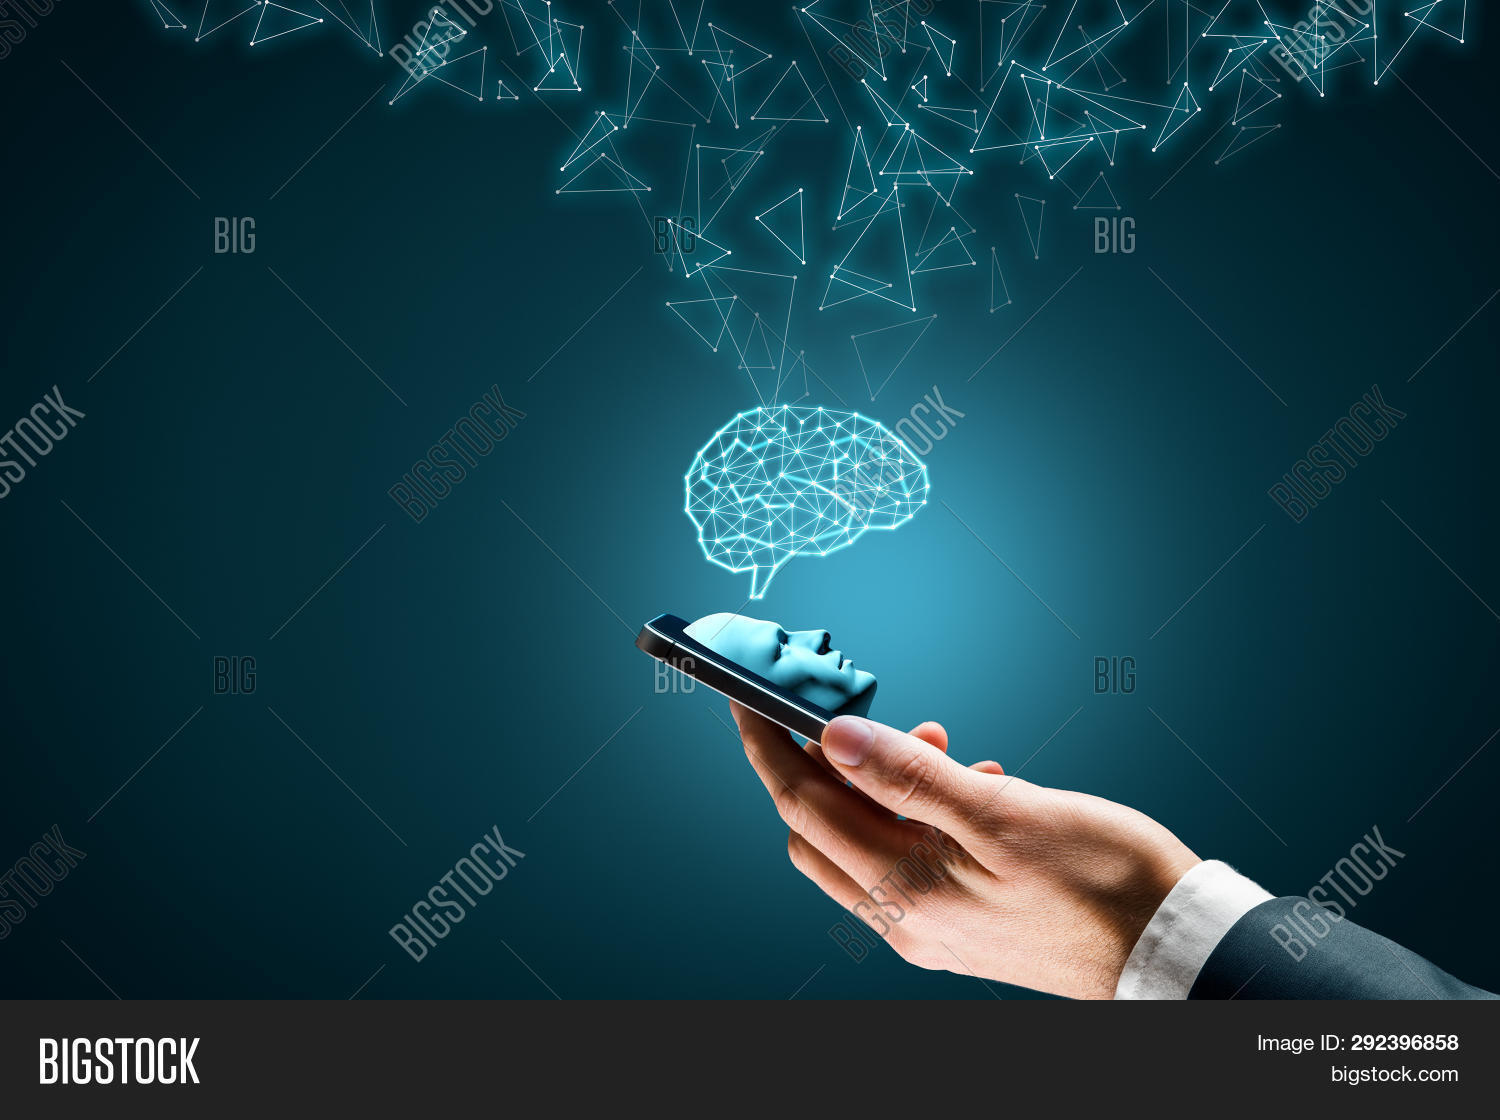 AI,artificial,brain,business,businessman,cellphone,concept,conceptual,creativity,data,data-mining,decision,deep,futuristic,genetic,innovation,innovative,intelligence,learning,machine,making,mining,mobile,modern,networks,neural,phone,programmer,programming,science,smart,technologies,think